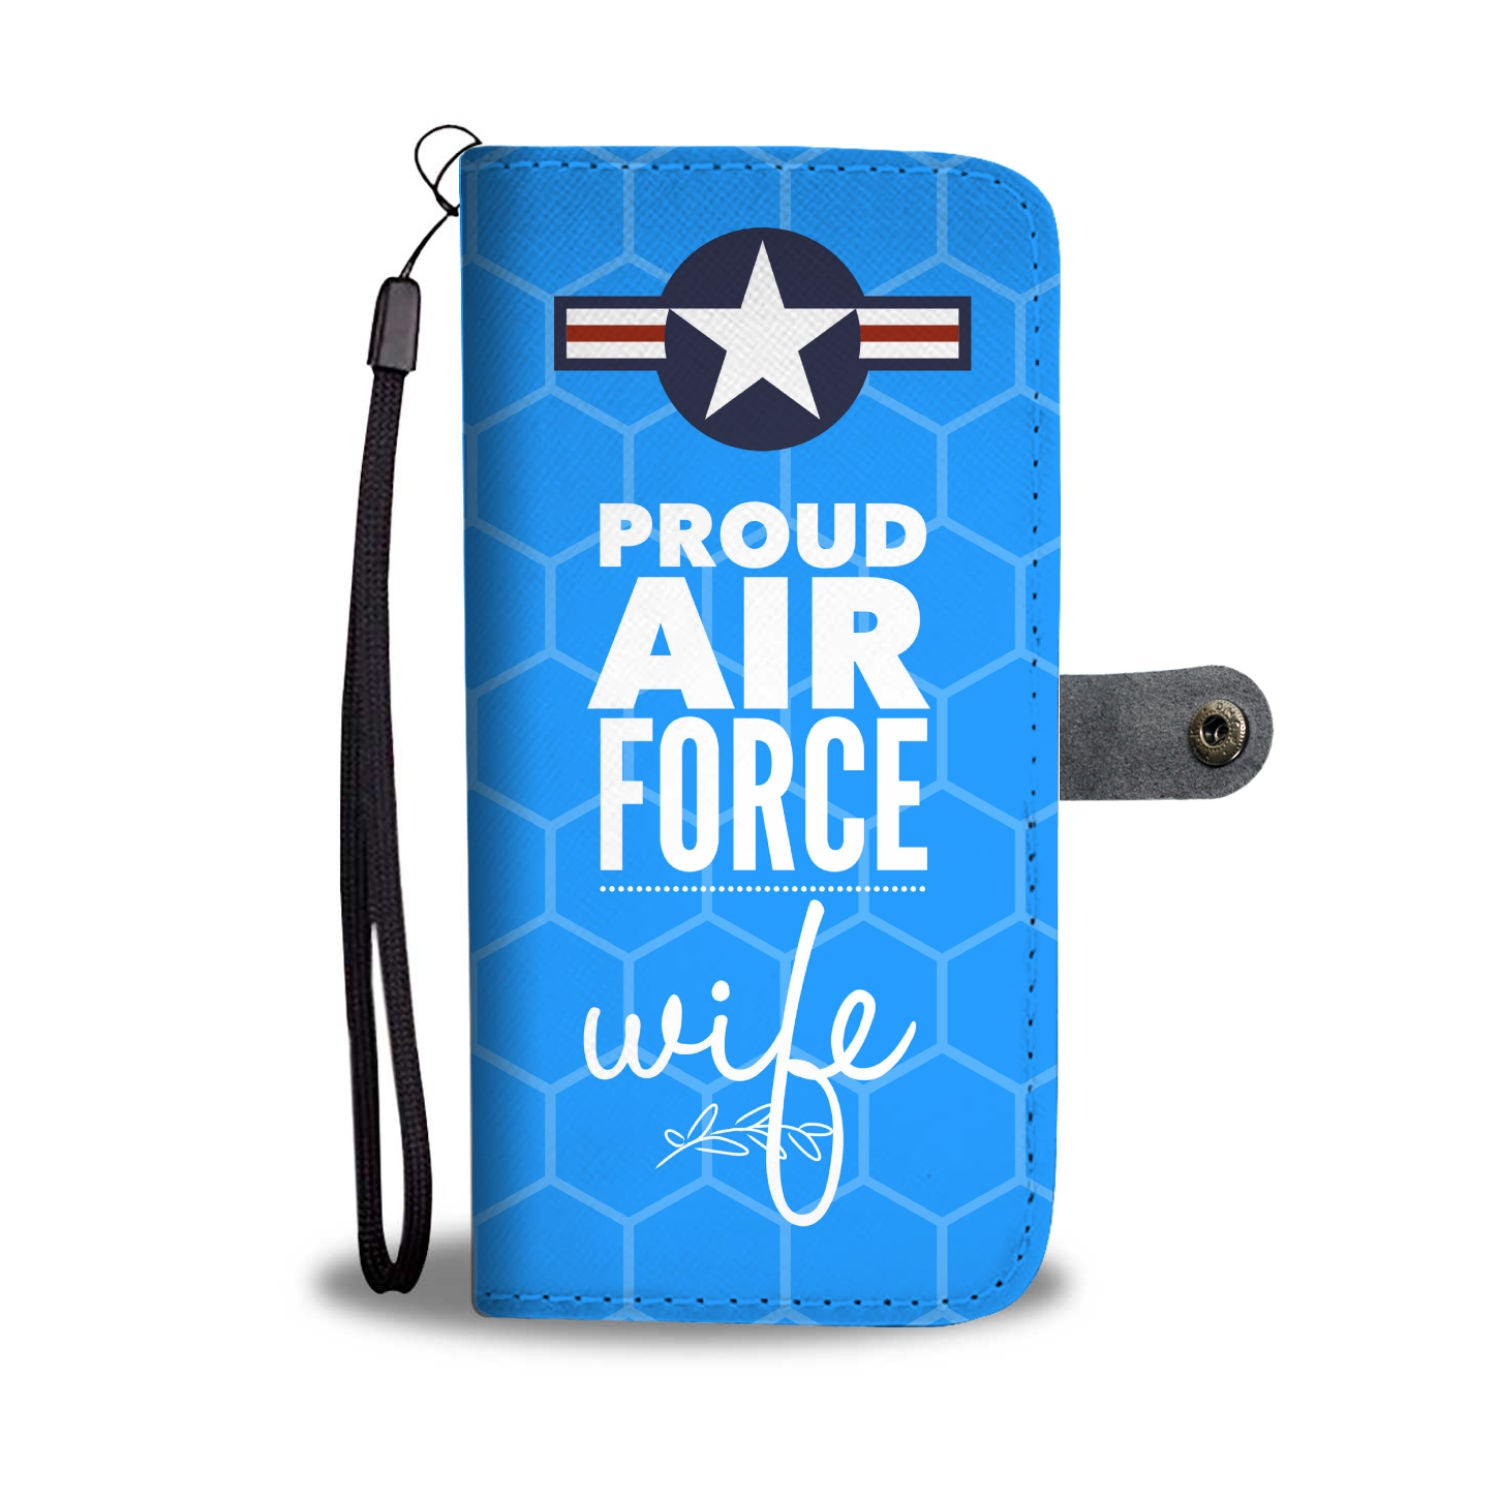 Proud Air Force Wife - Wallet Phone Case